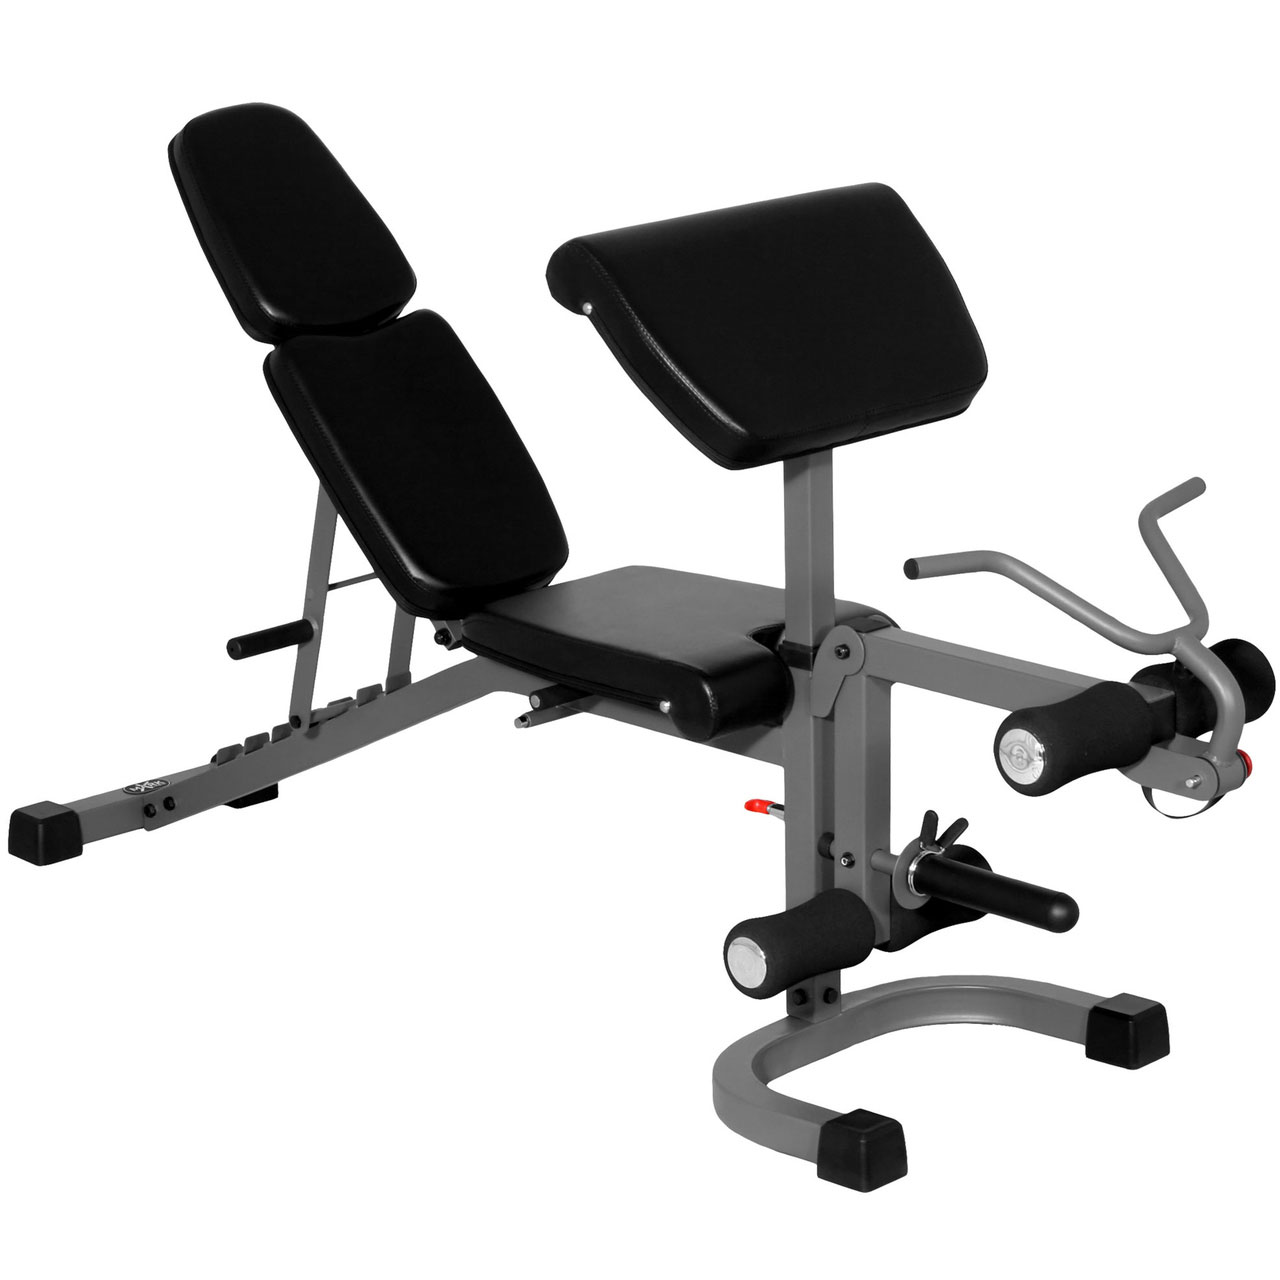 Xmark fitness flat incline decline bench with arm curl and leg developer xm 4418 incredibody - Incline and decline bench ...